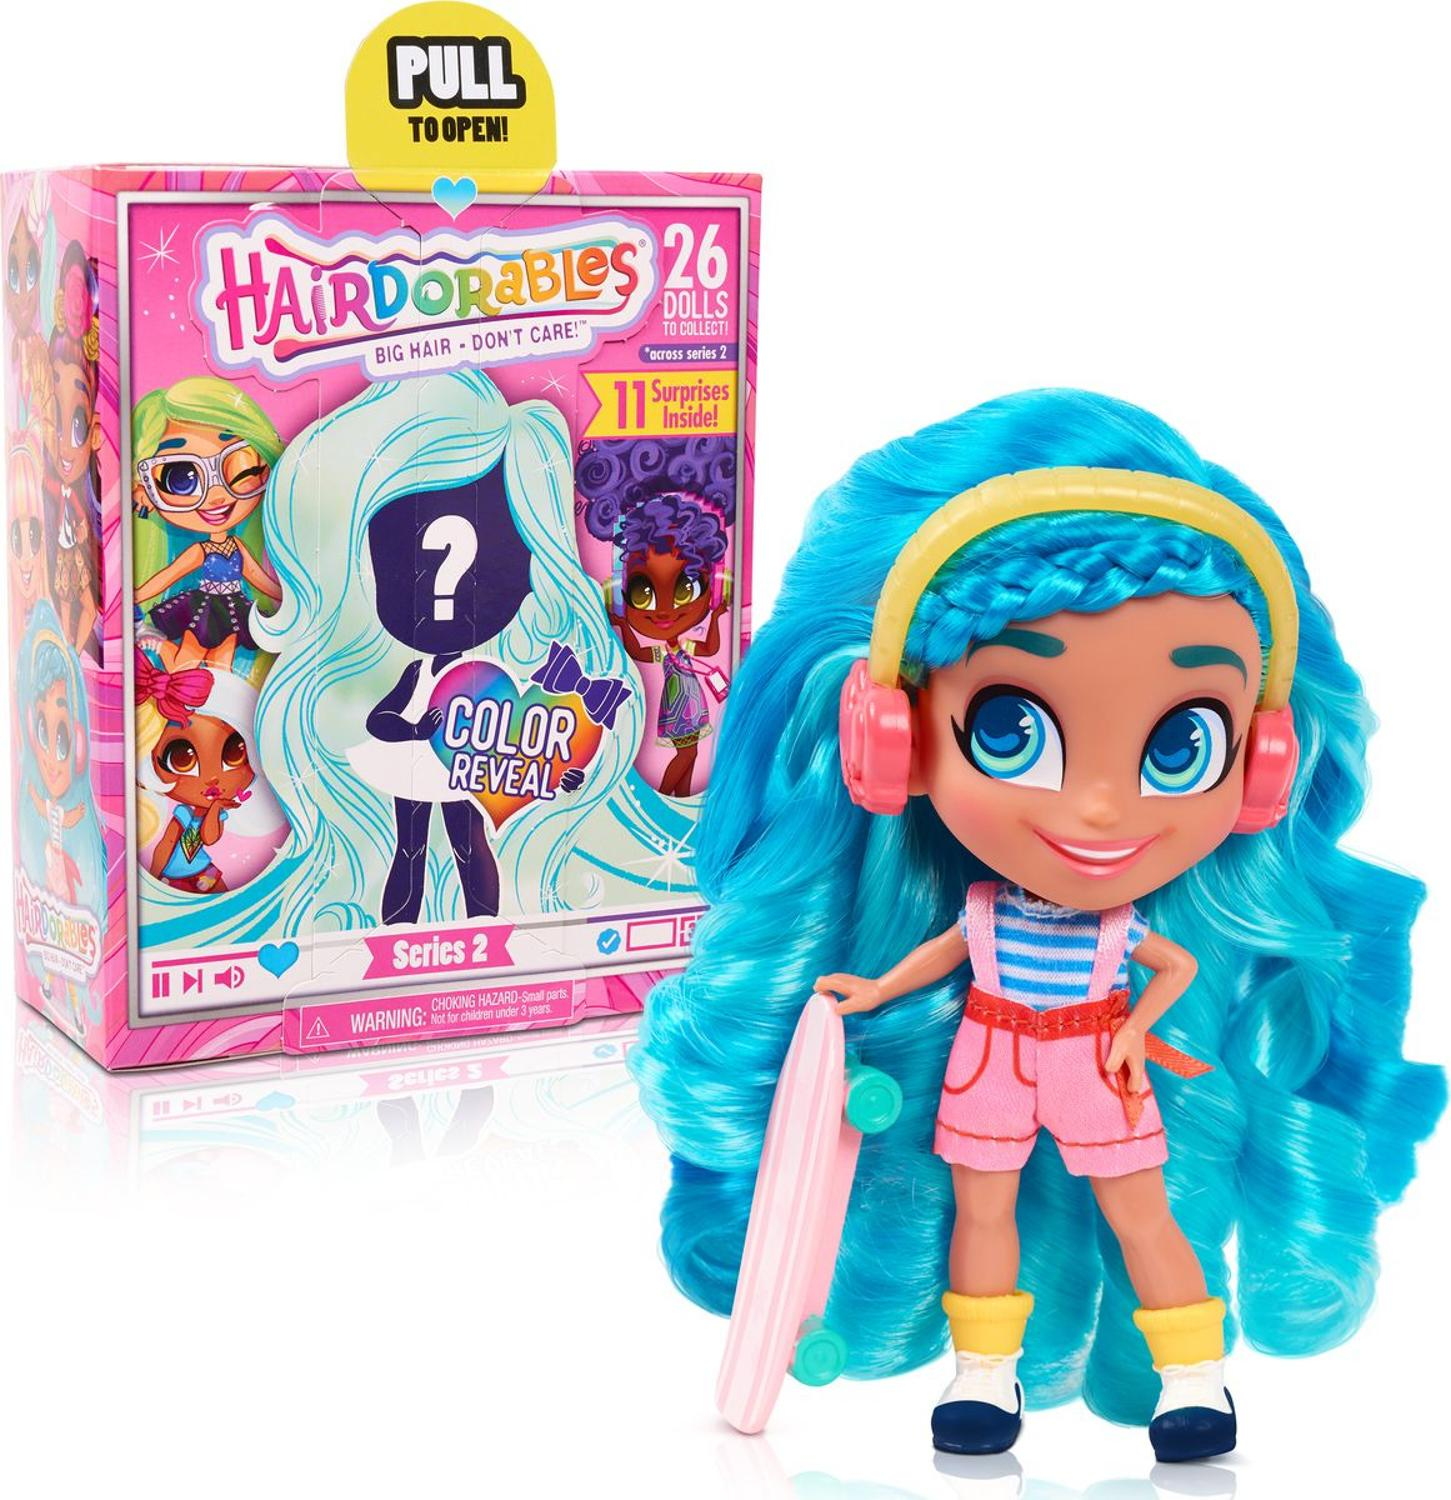 Doll Hairdorables Fashion Images, 2 Series